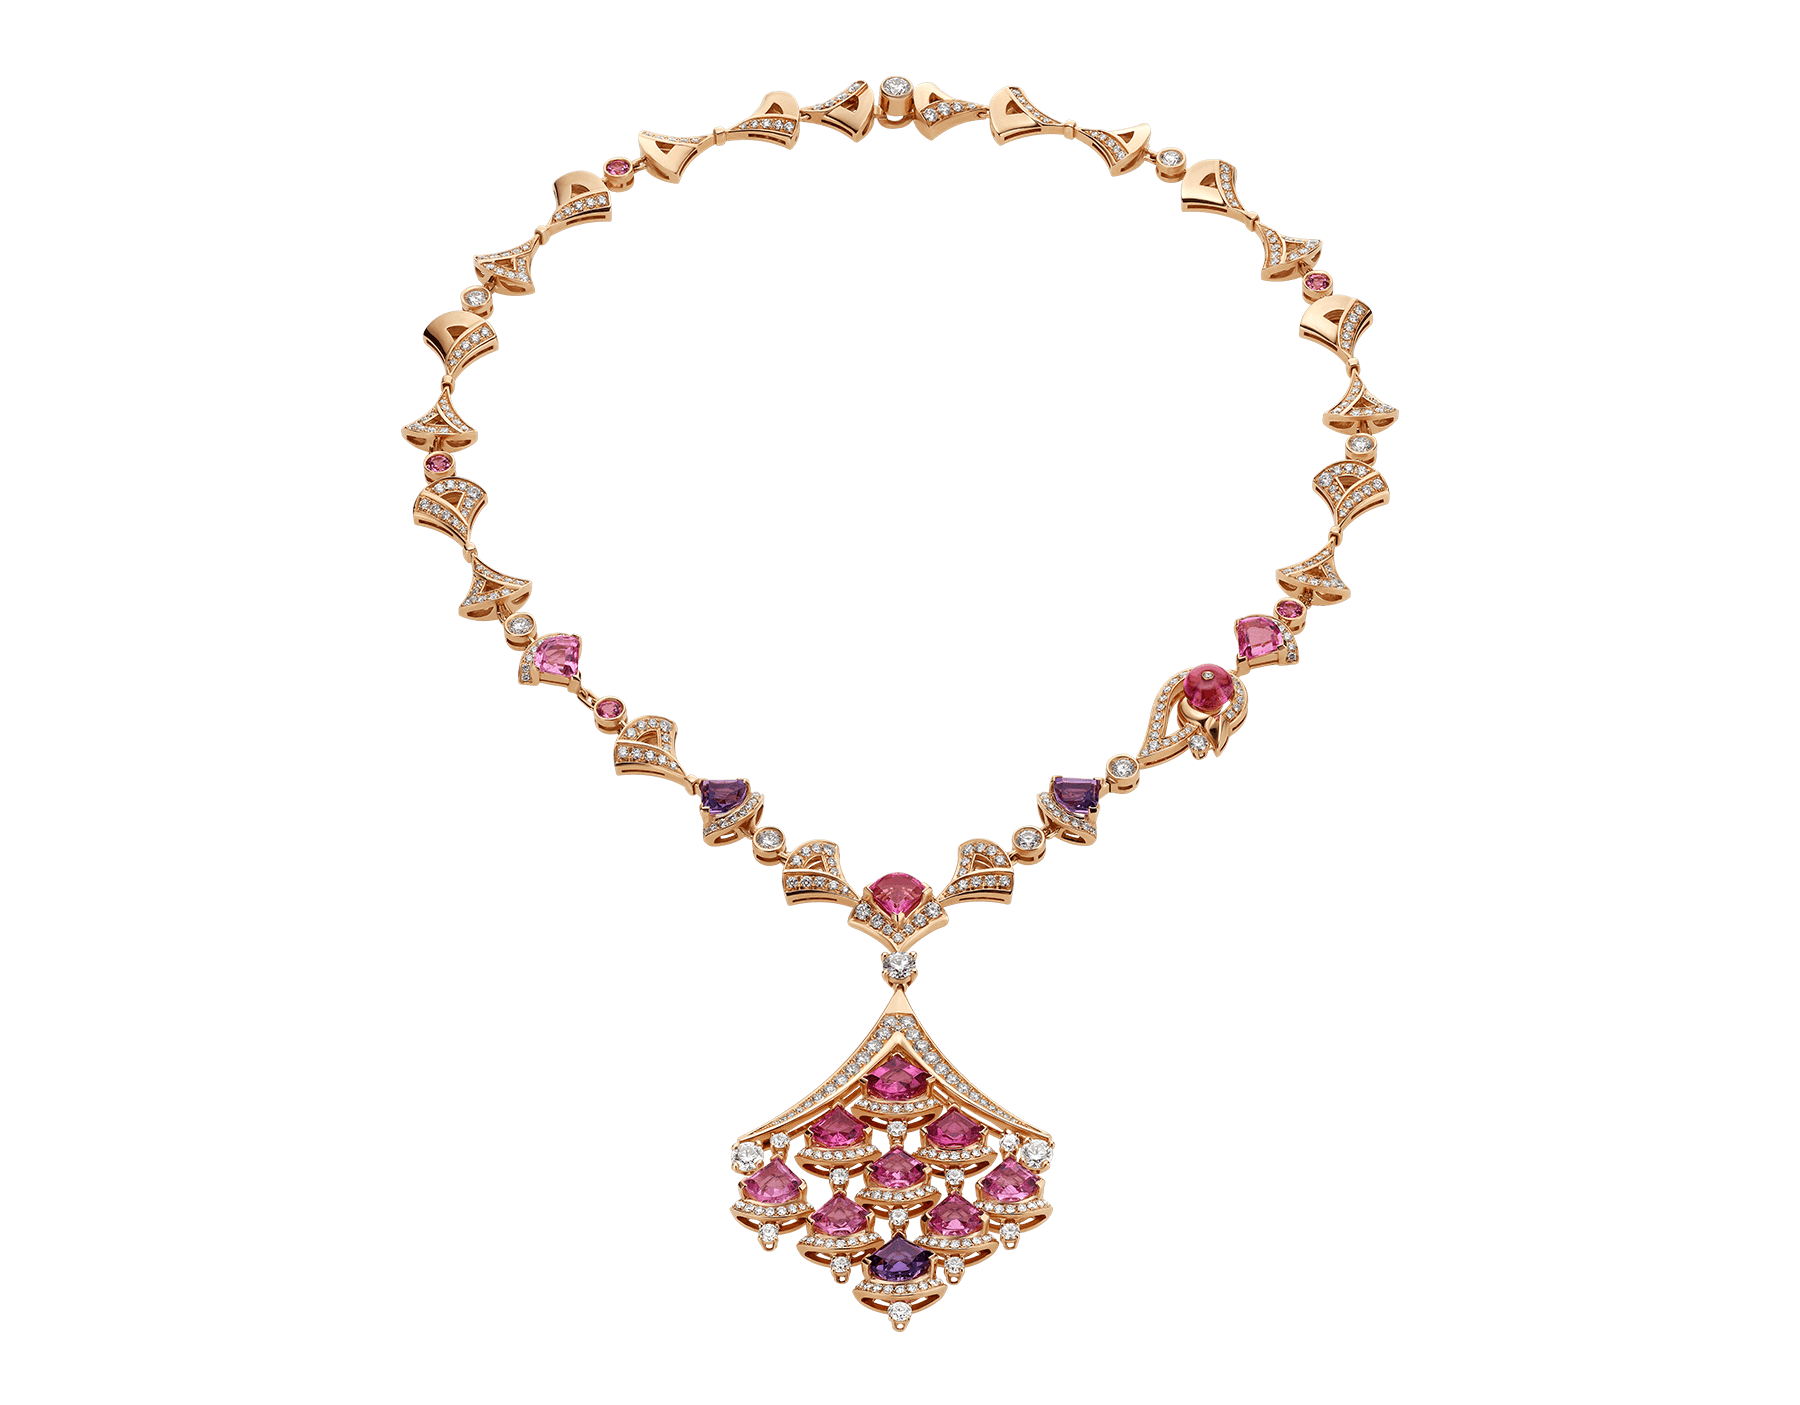 DIVAS' DREAM necklace in 18 kt rose gold set with pink rubellite (3.50 ct), pink tourmaline (8.30 ct) amethysts (2.50 ct) and pavé diamonds (6.75 ct). 354074 image 1